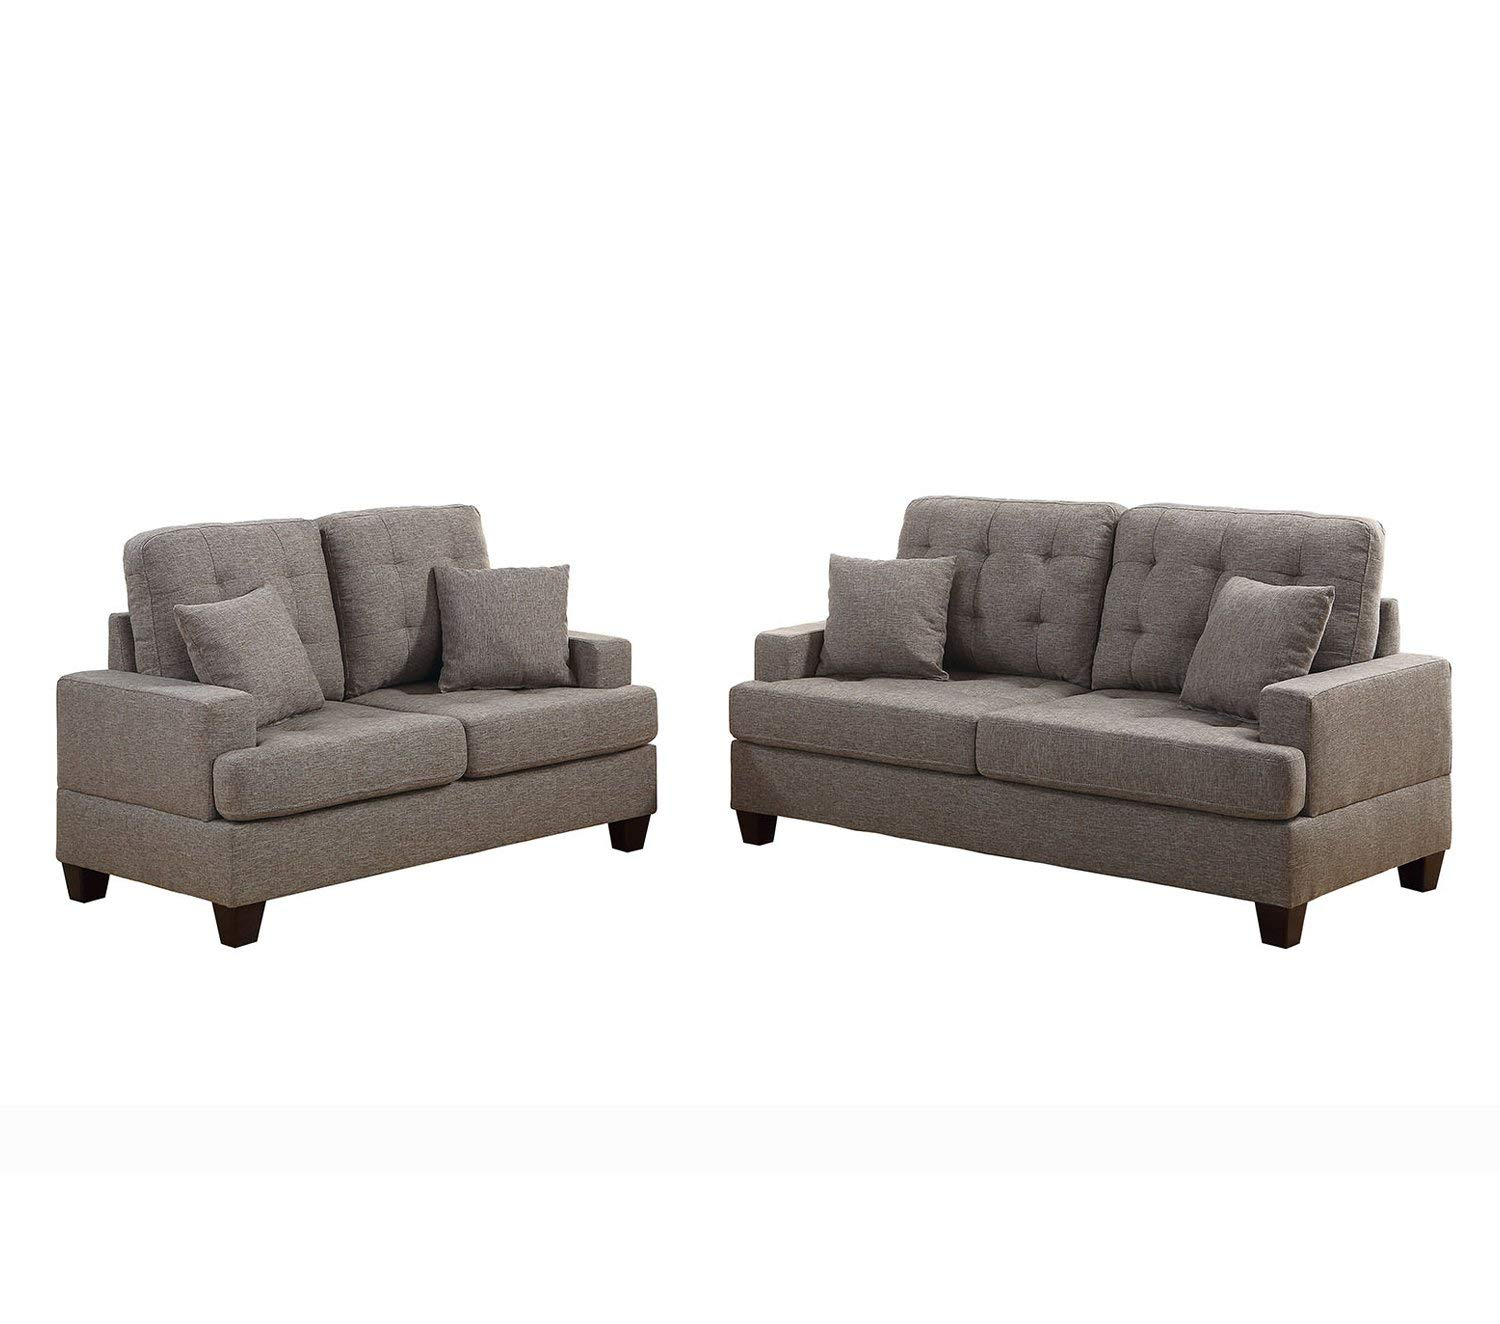 bobkona sectional sofa embly instructions surefit pearson stretch cover 2 pcs oleta and loveseat set